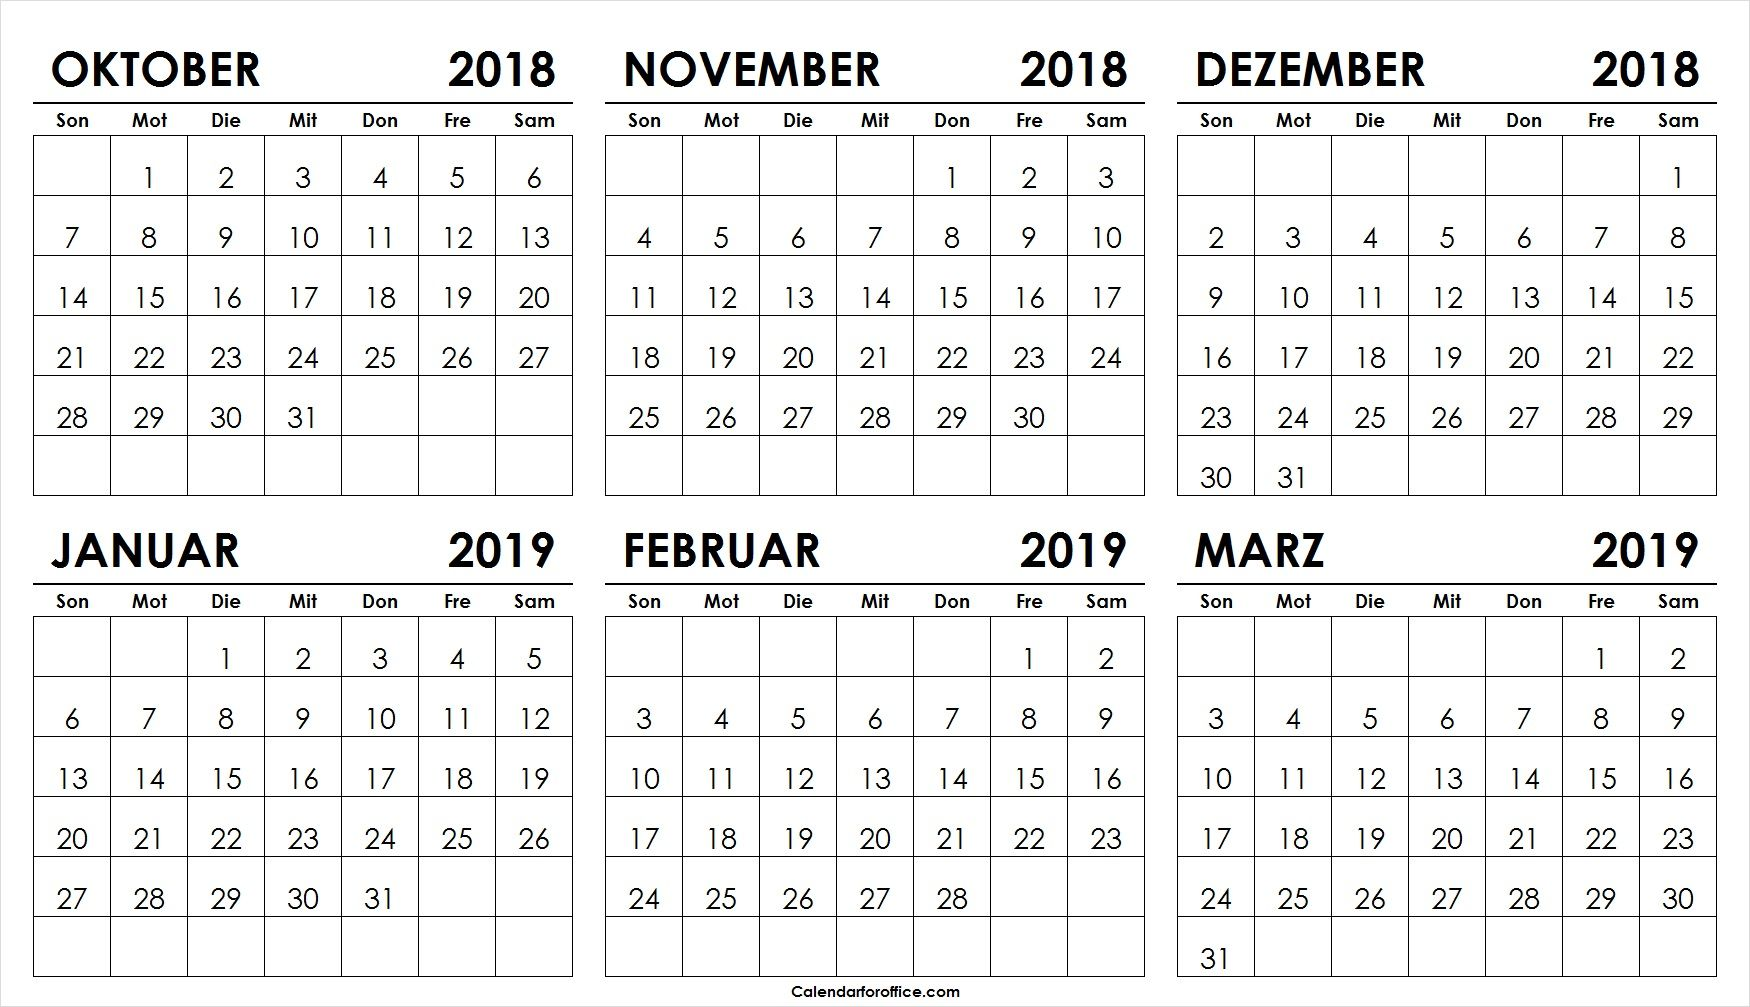 kalender oktober november dezember 2018 januar februar marz 2019 free printables printables. Black Bedroom Furniture Sets. Home Design Ideas